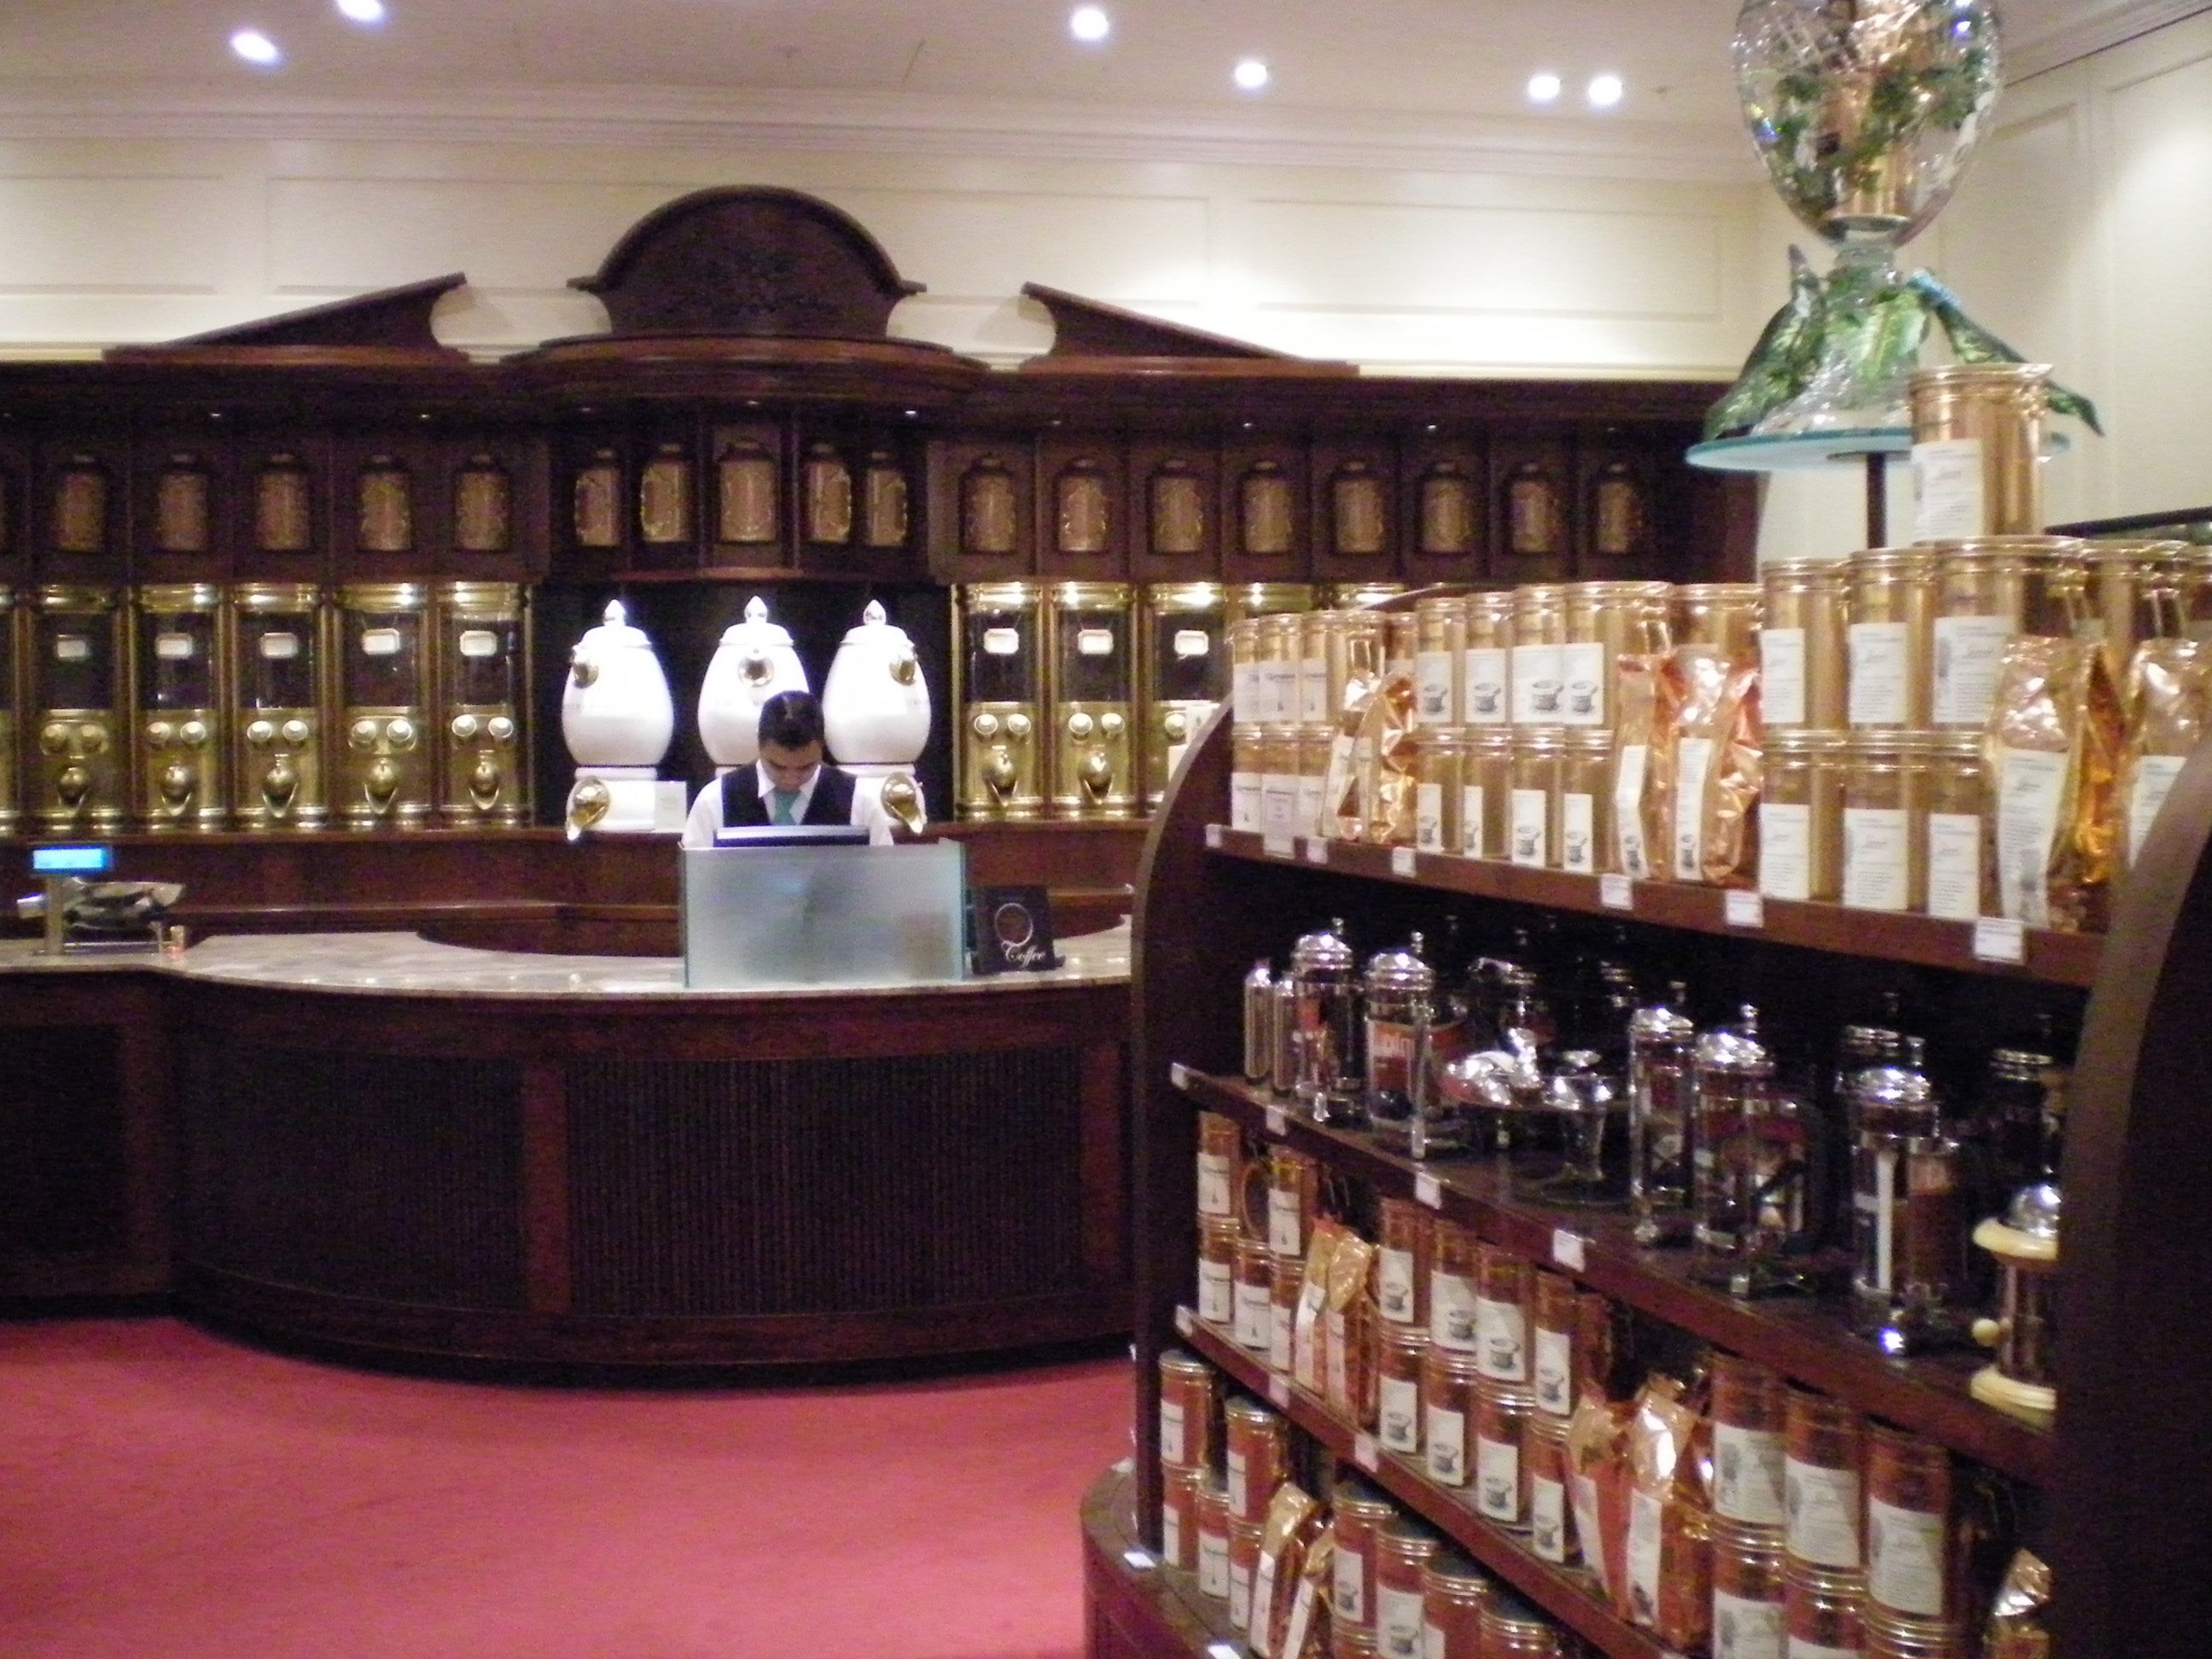 Edificio en Fortnum and Mason